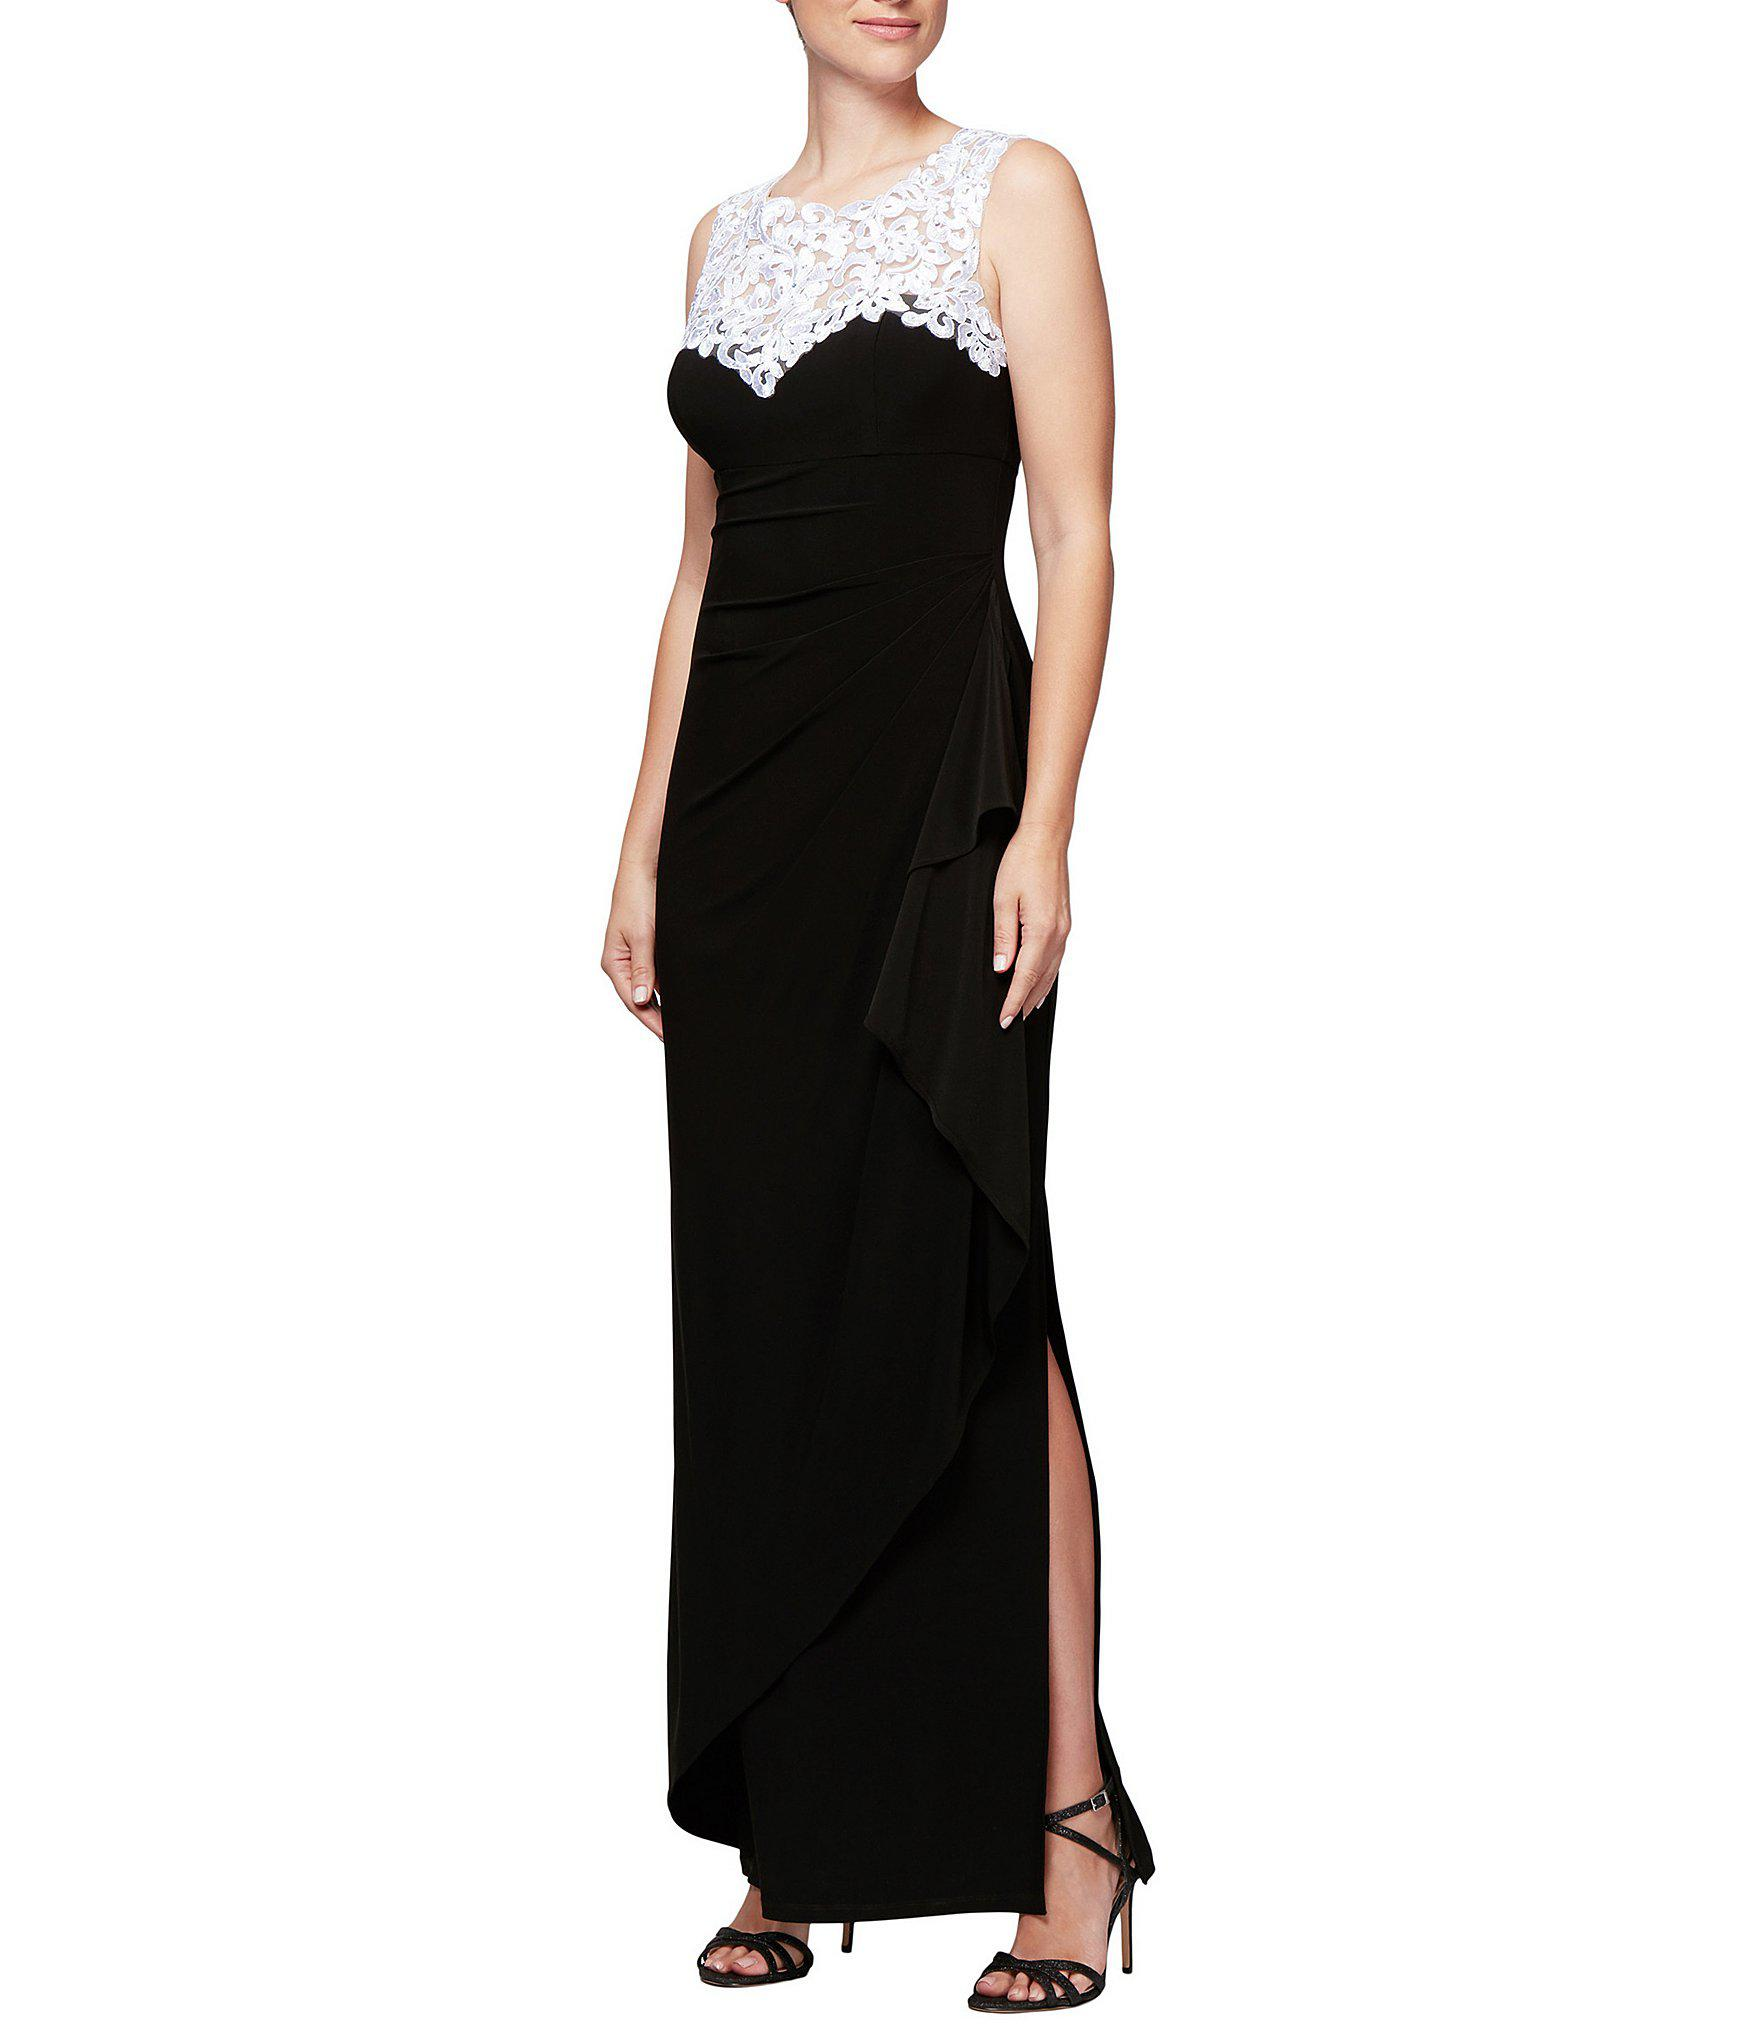 e4a24fa88772 Lyst - Alex Evenings Embroidered Neck Sleeveless Long Gown in Black